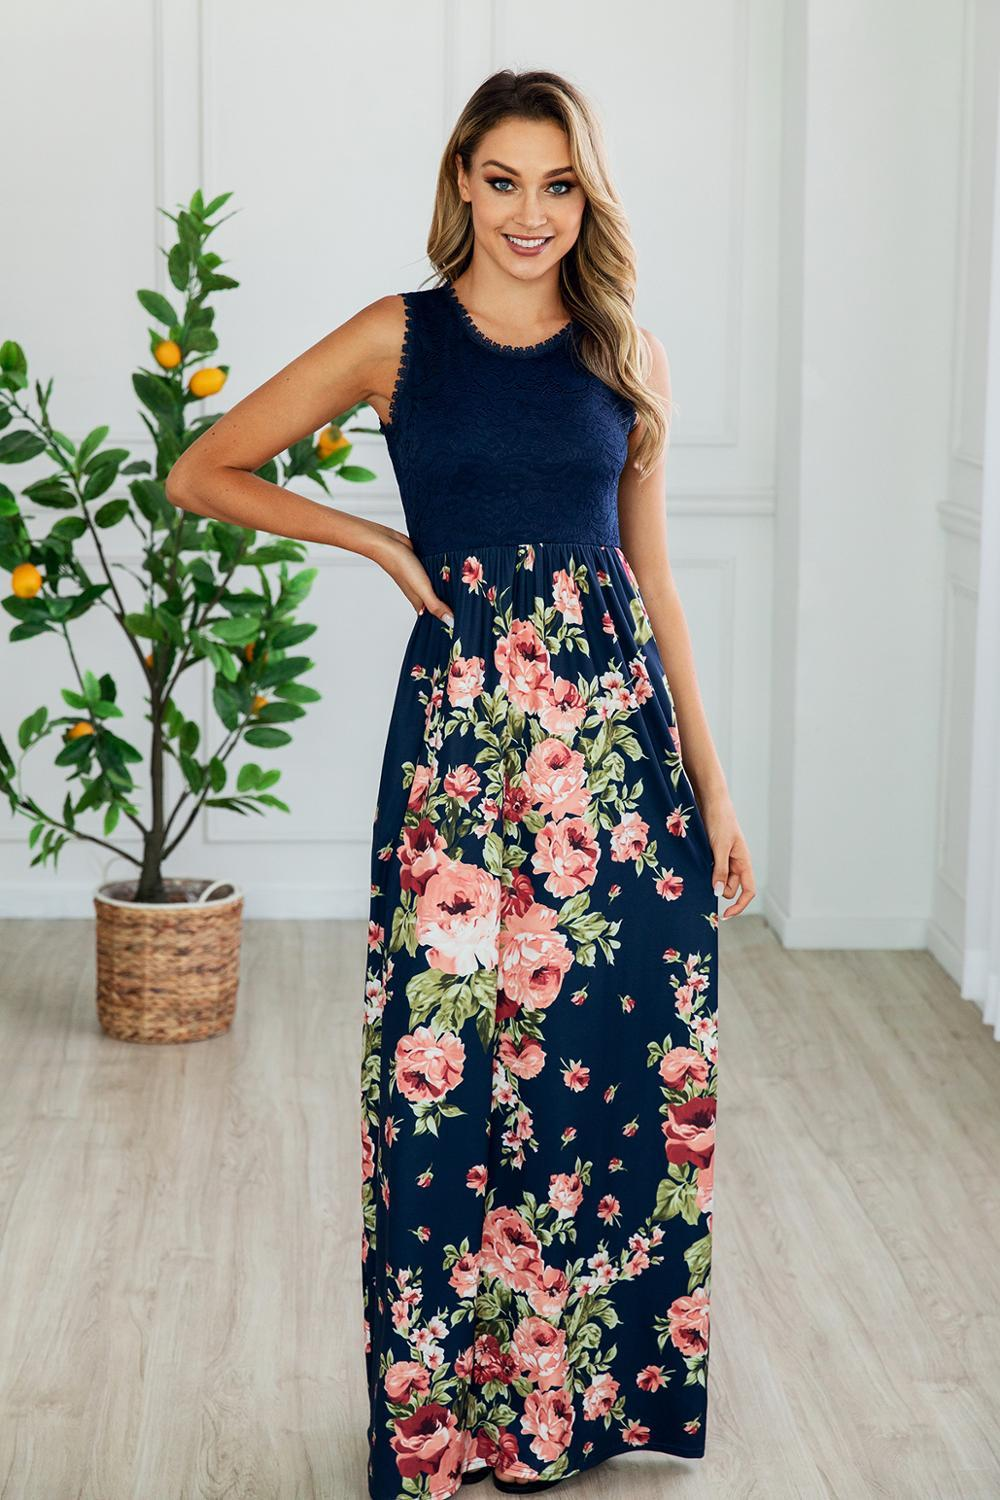 Women Maxi Dress Floral Print Long Summer Lace Dress Blue Party Night Dress Elegant <font><b>Vestidos</b></font> <font><b>Largos</b></font> De <font><b>Verano</b></font> Moda <font><b>Mujer</b></font> <font><b>2019</b></font> image